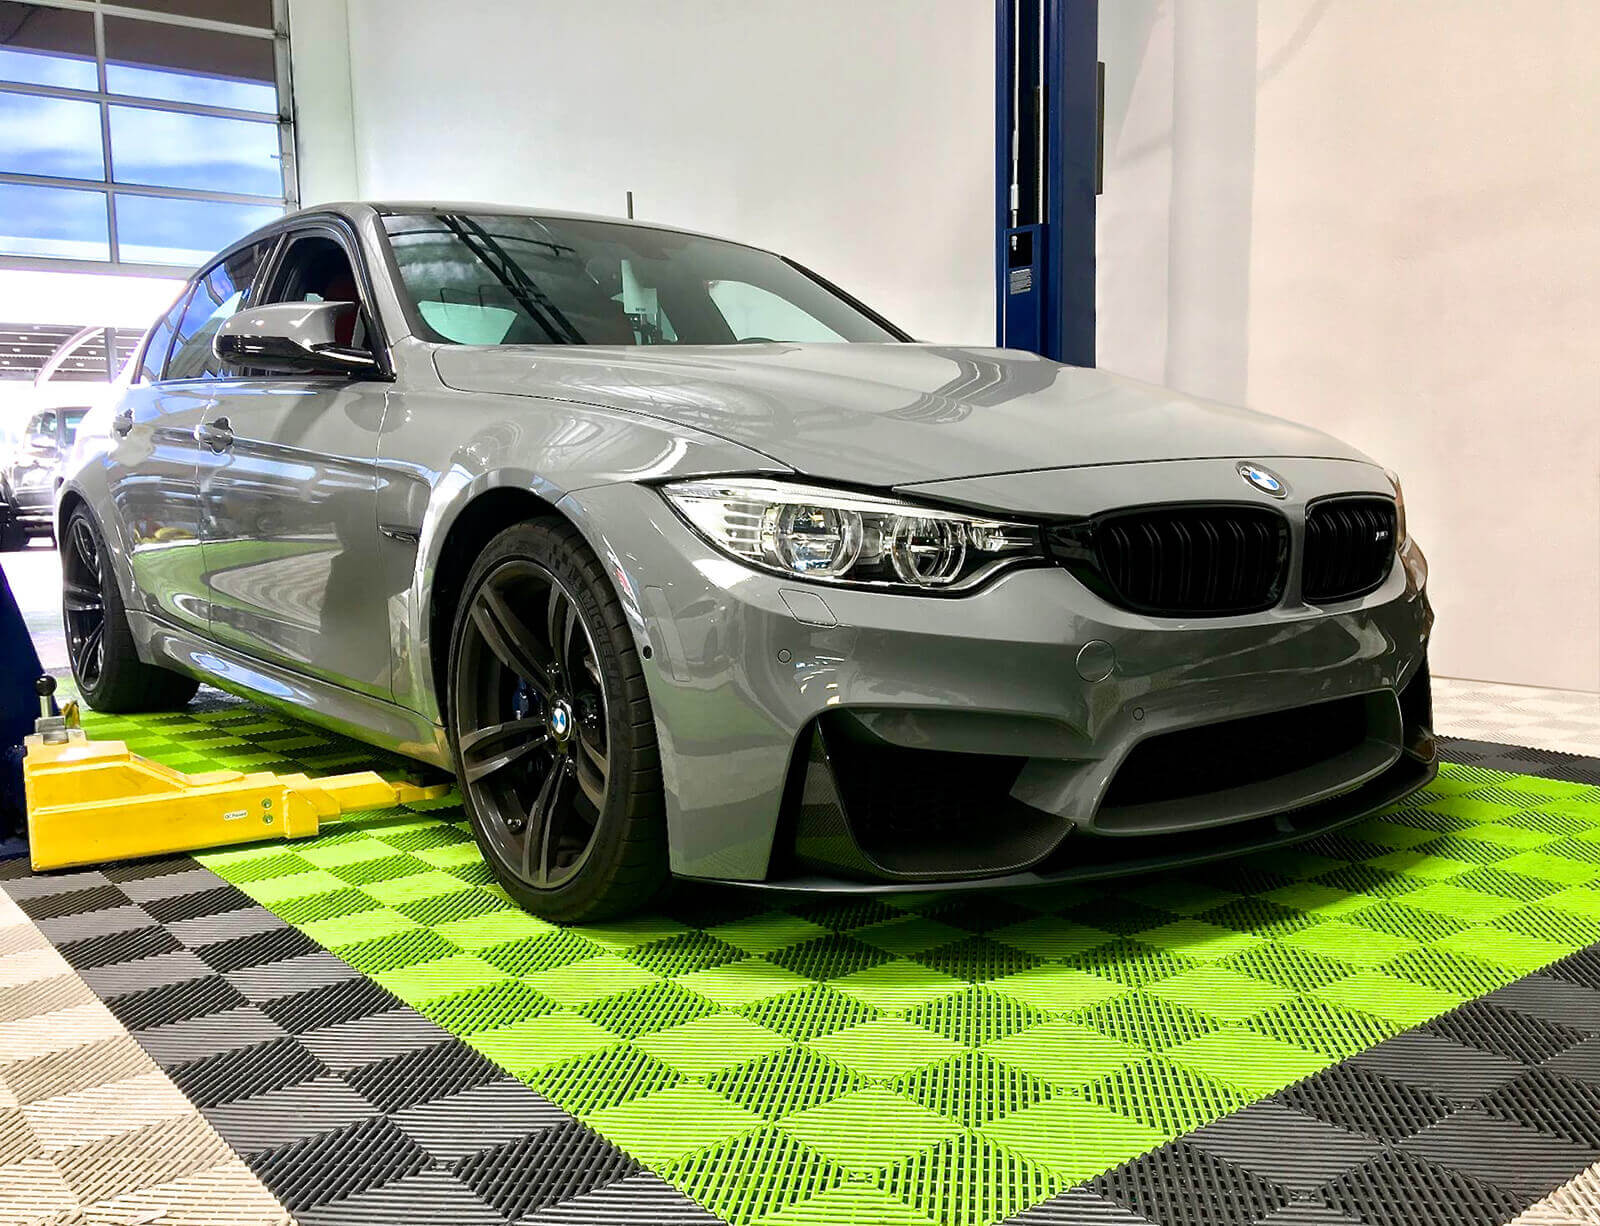 BMW on Free-Flow sublime, graphite and white tile flooring at Lusso Auto Spa.